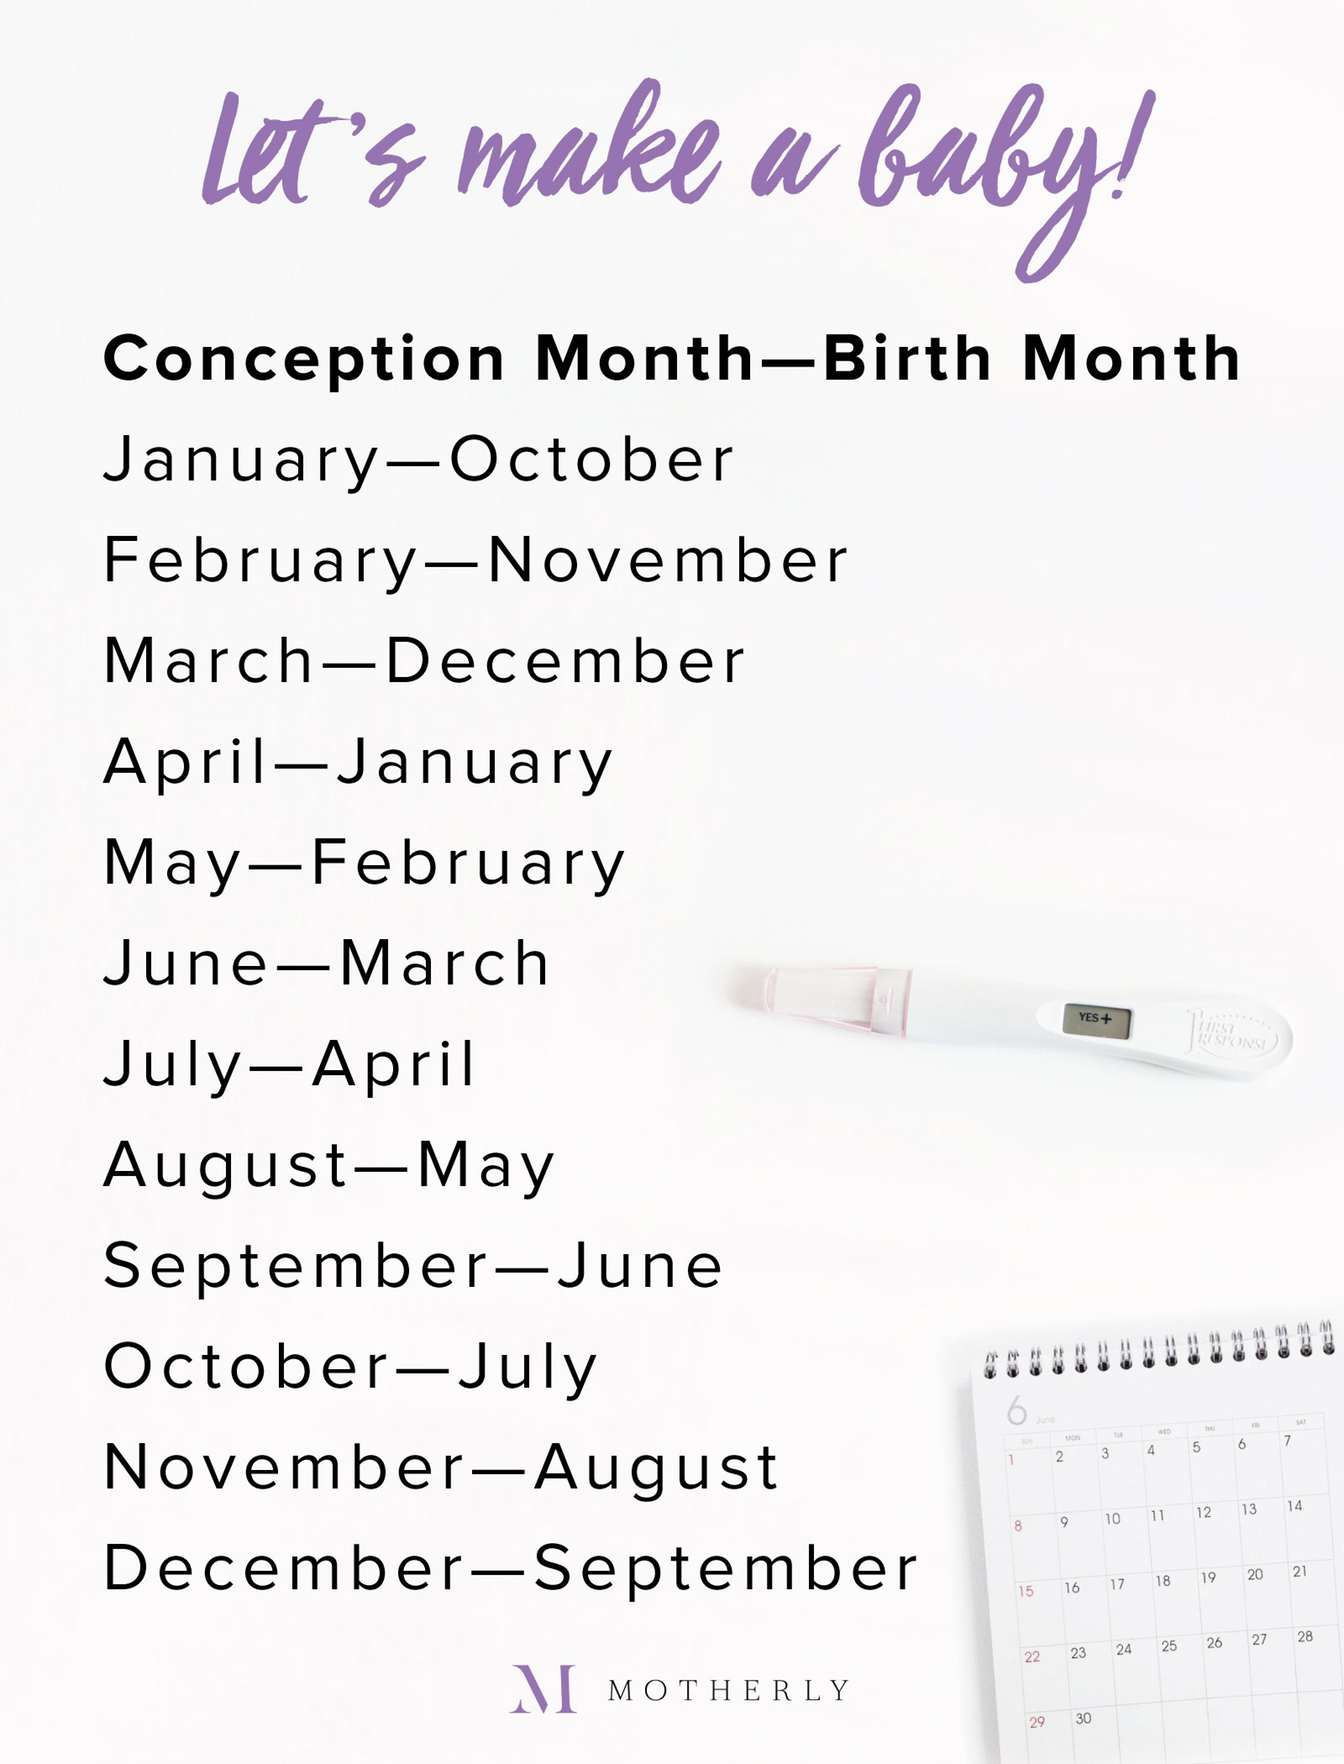 Image Result For Conception Month Birth Planning To Get Pregnant When